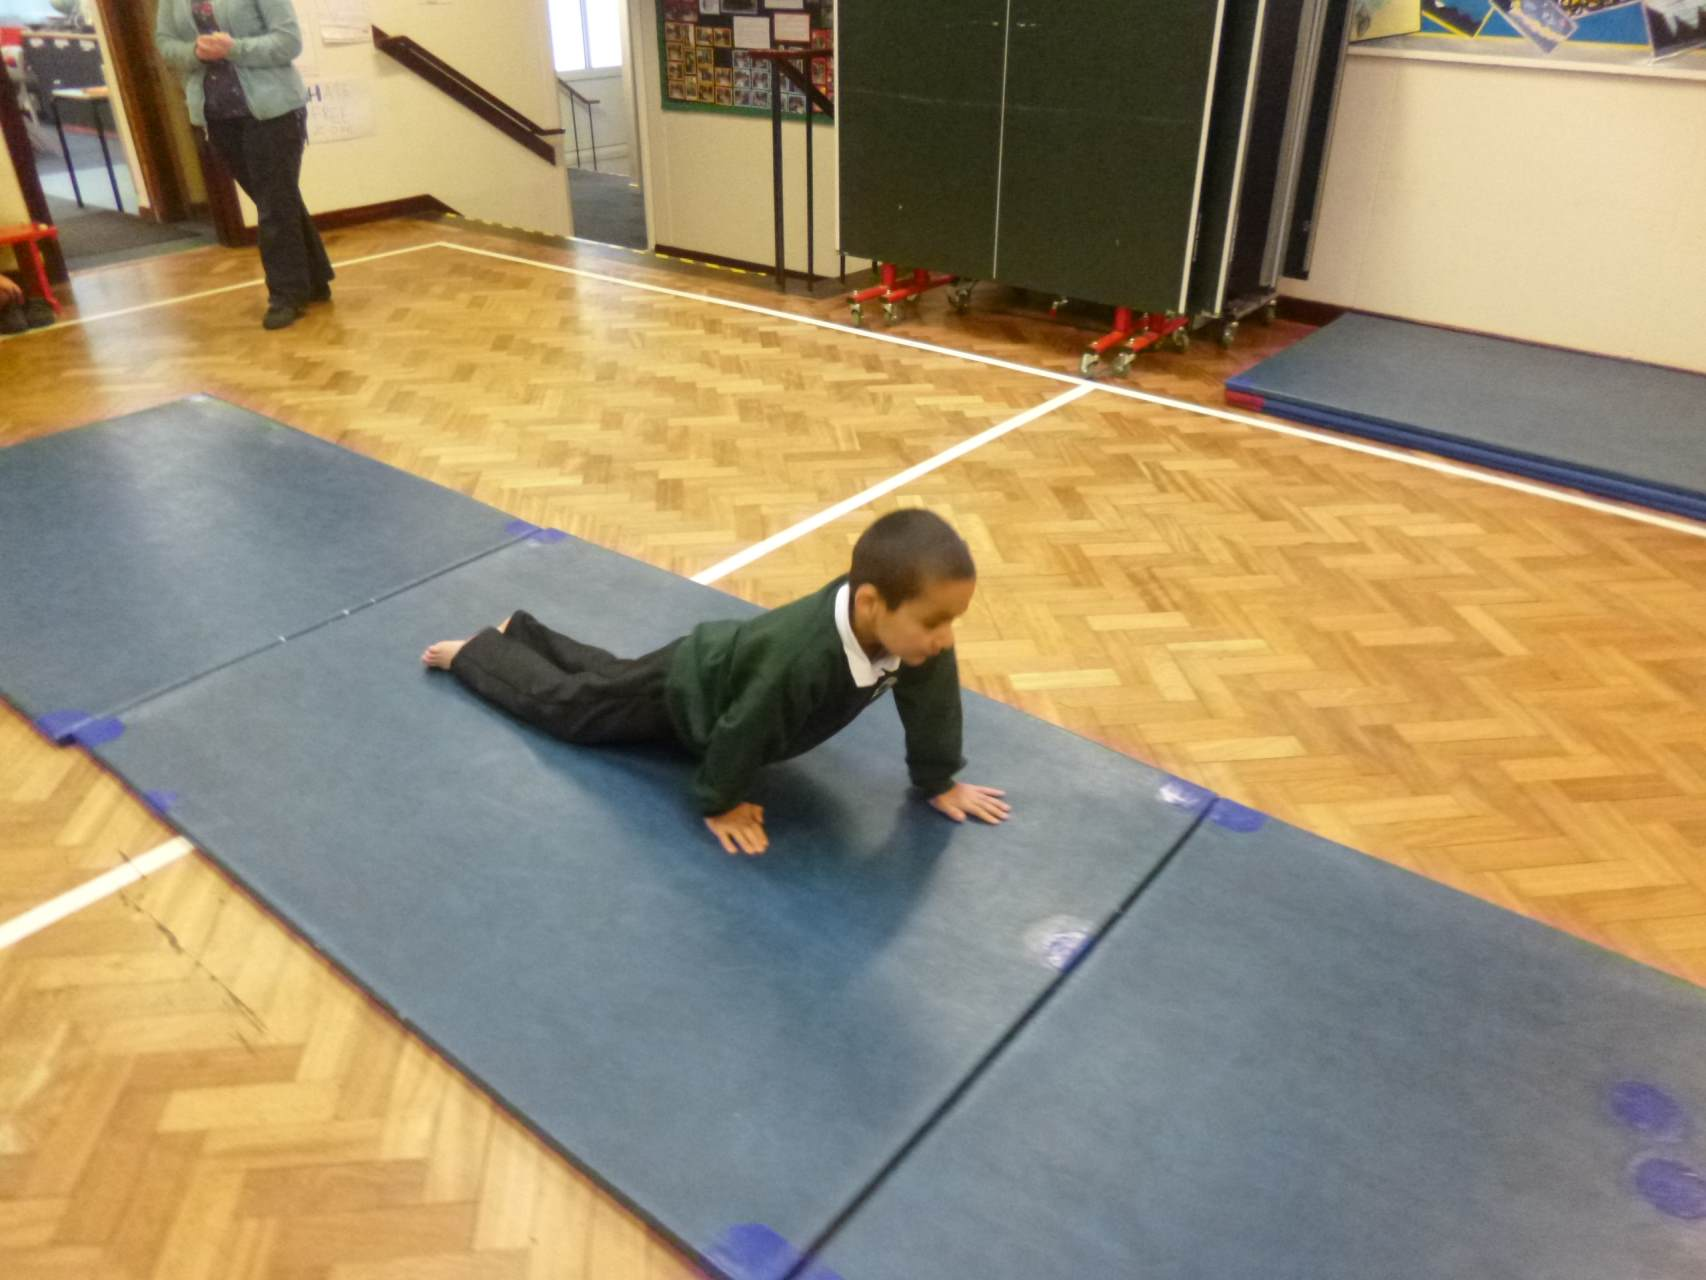 Using physical skills to develop